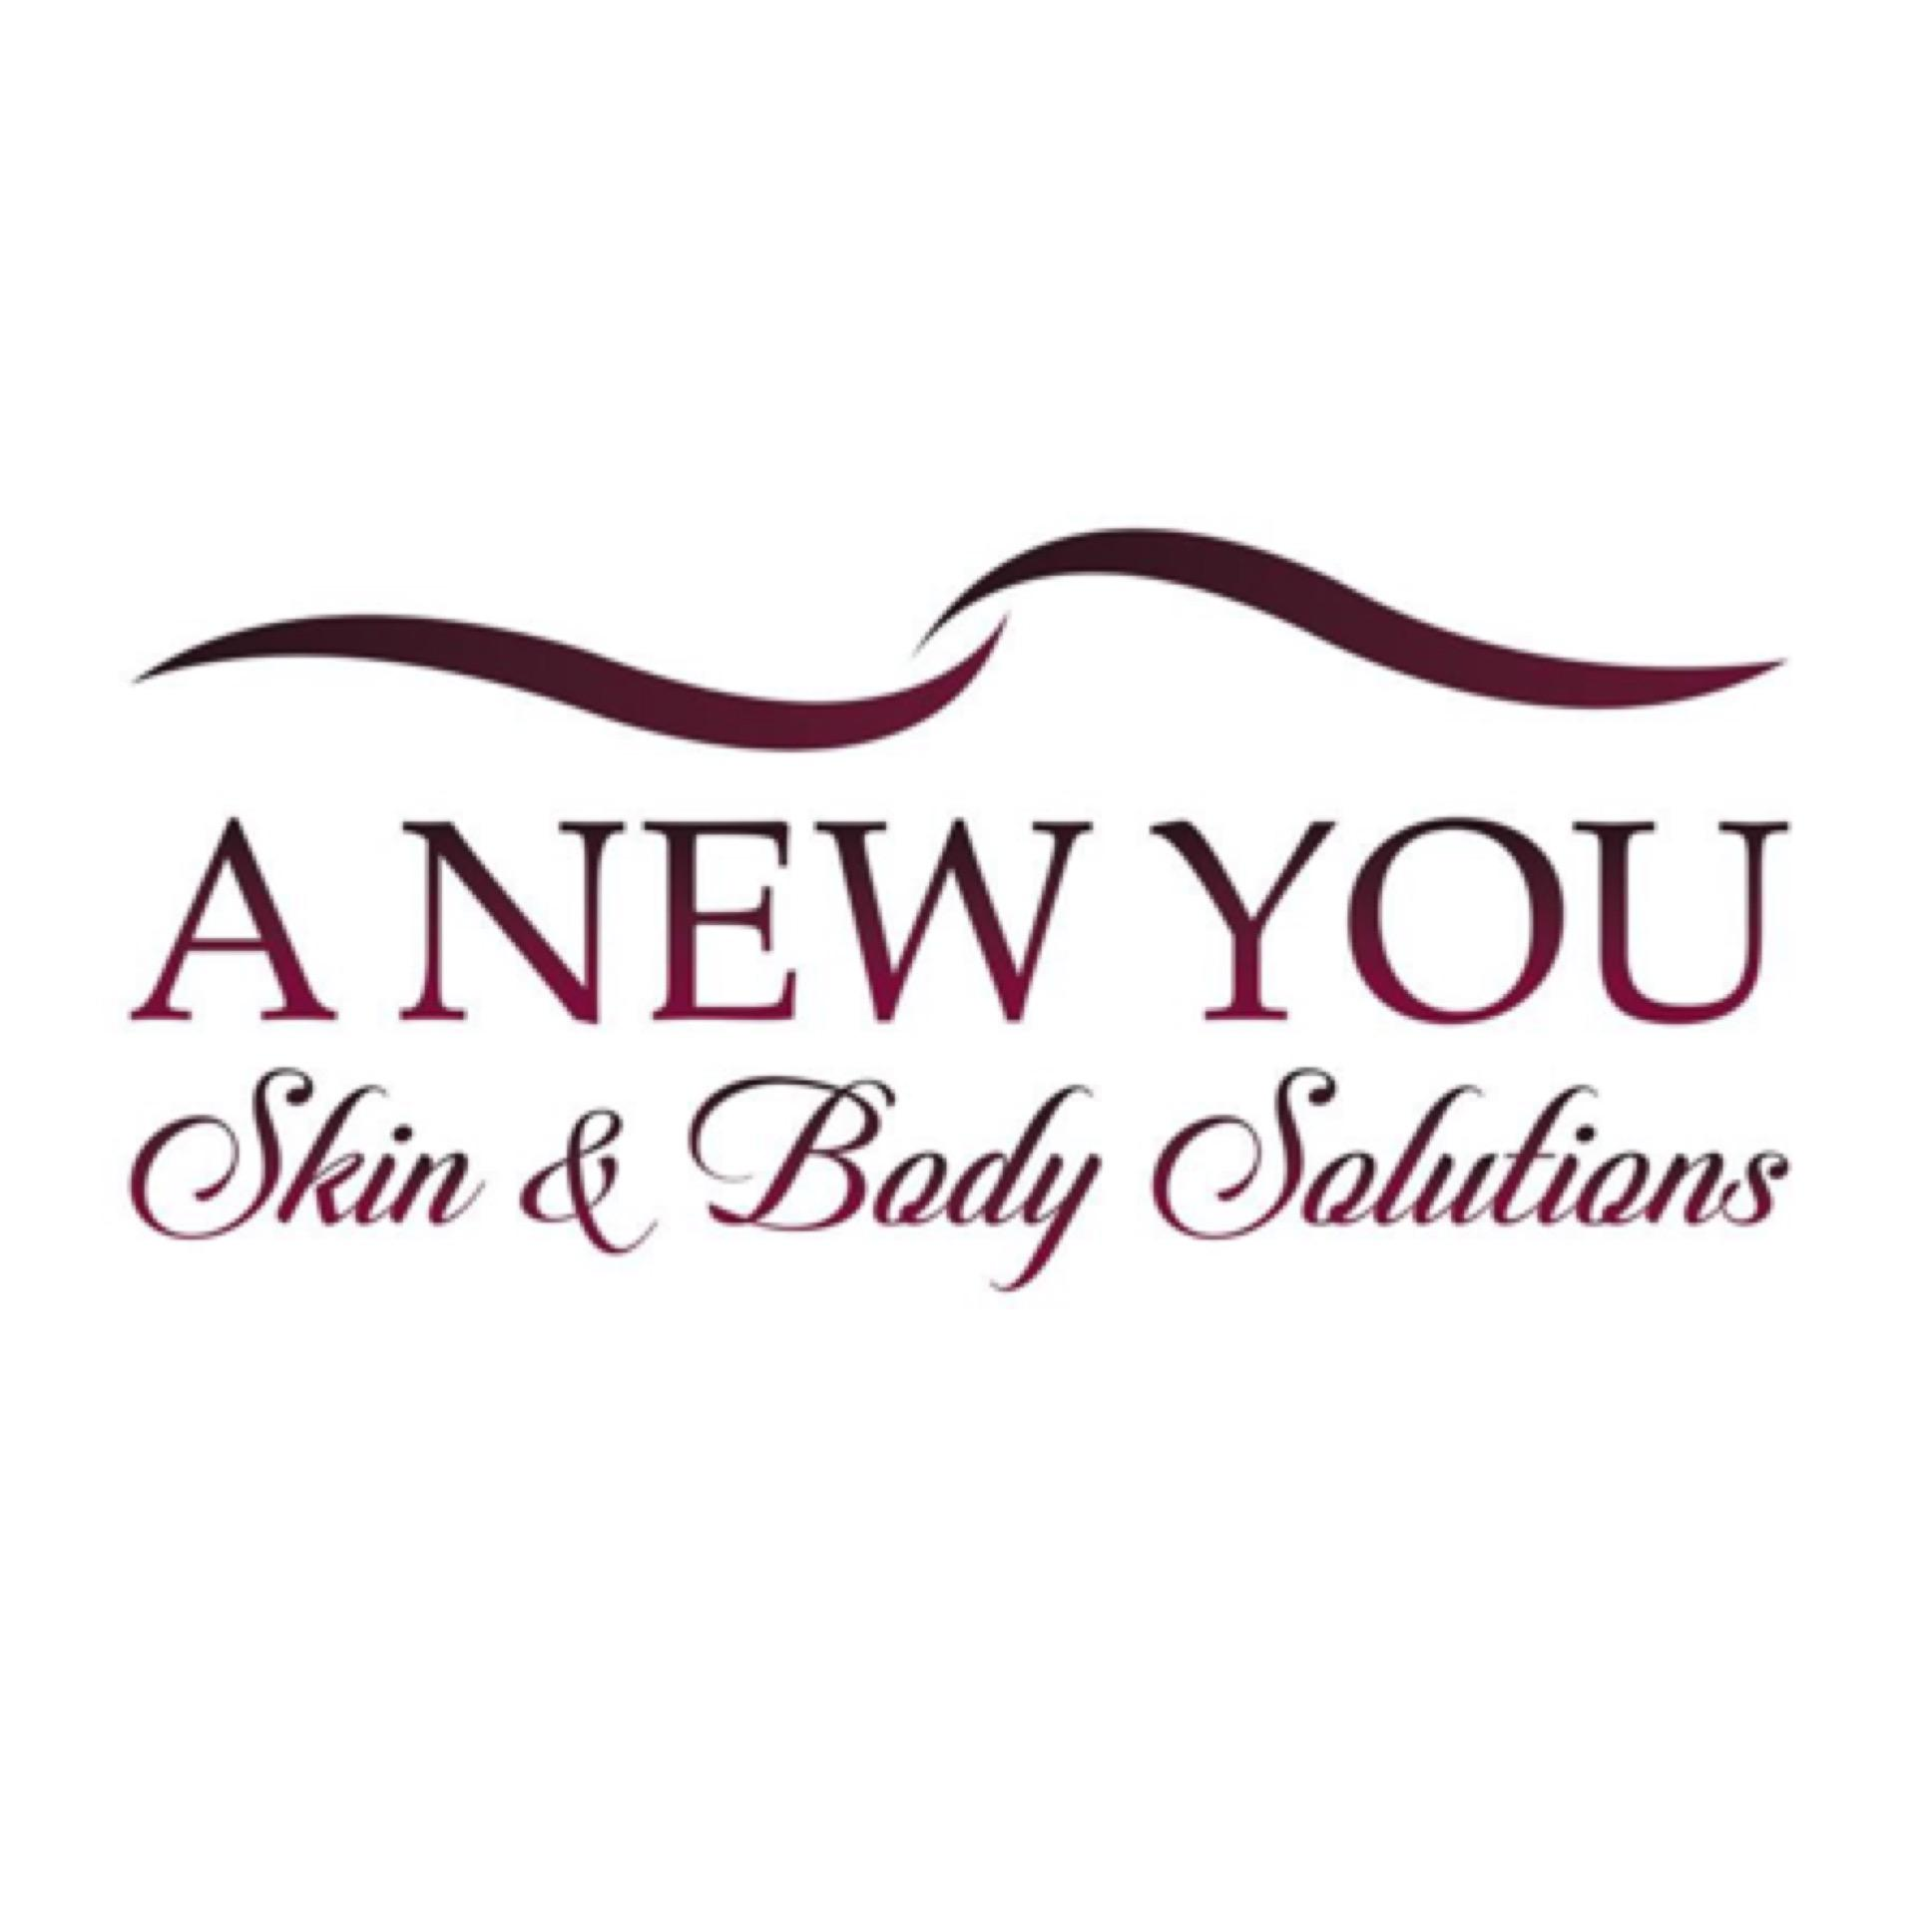 A NEW YOU Skin & Body Solutions Logo